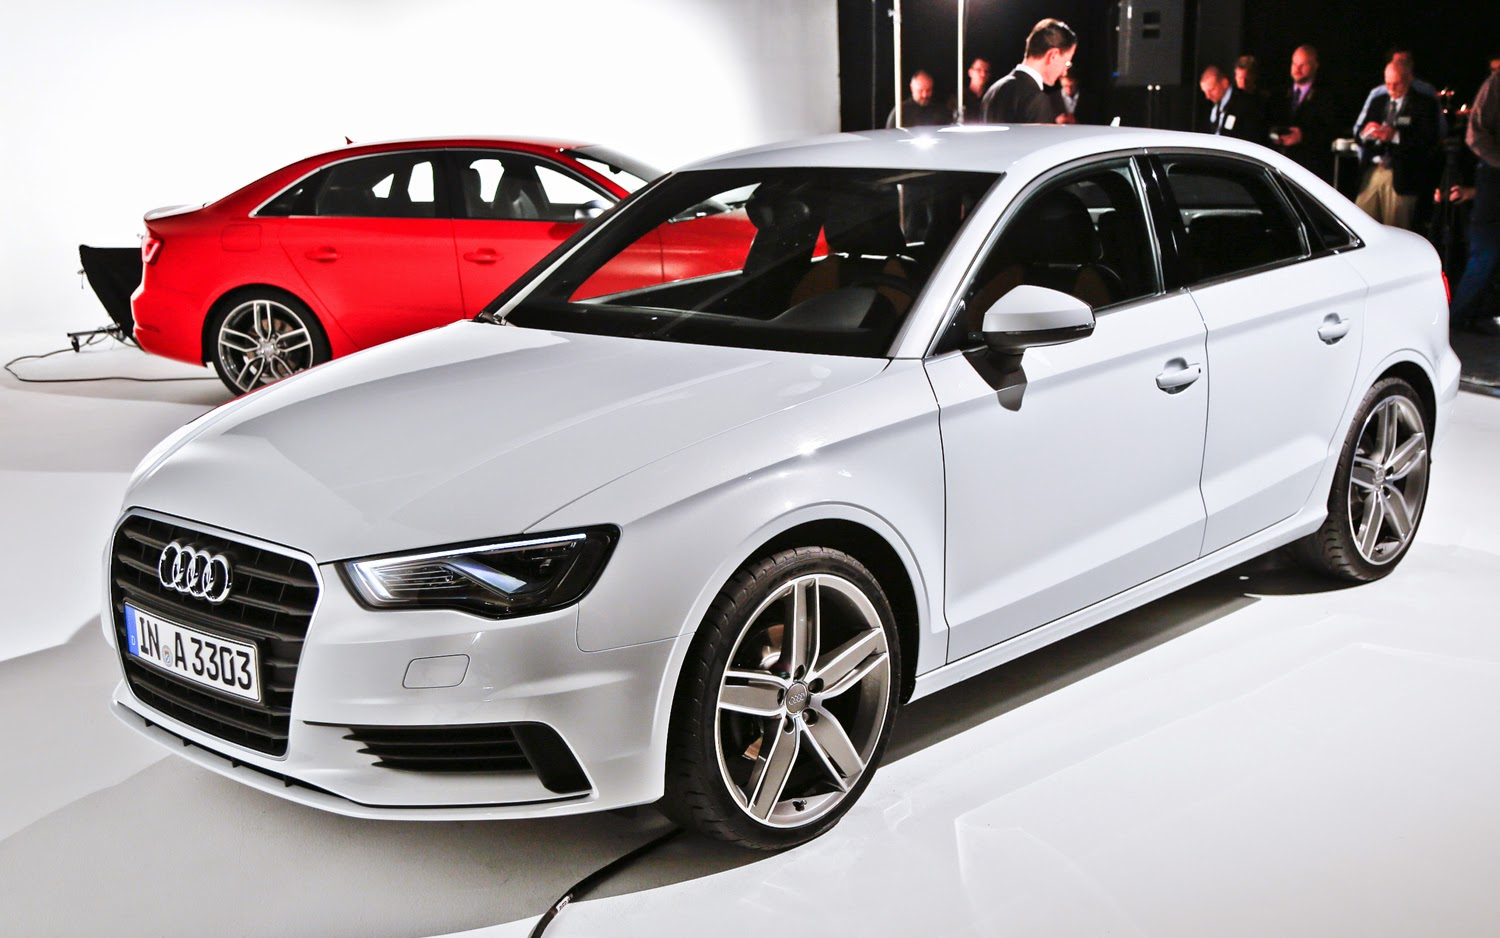 2015 Audi A3 Models Price And Specifications